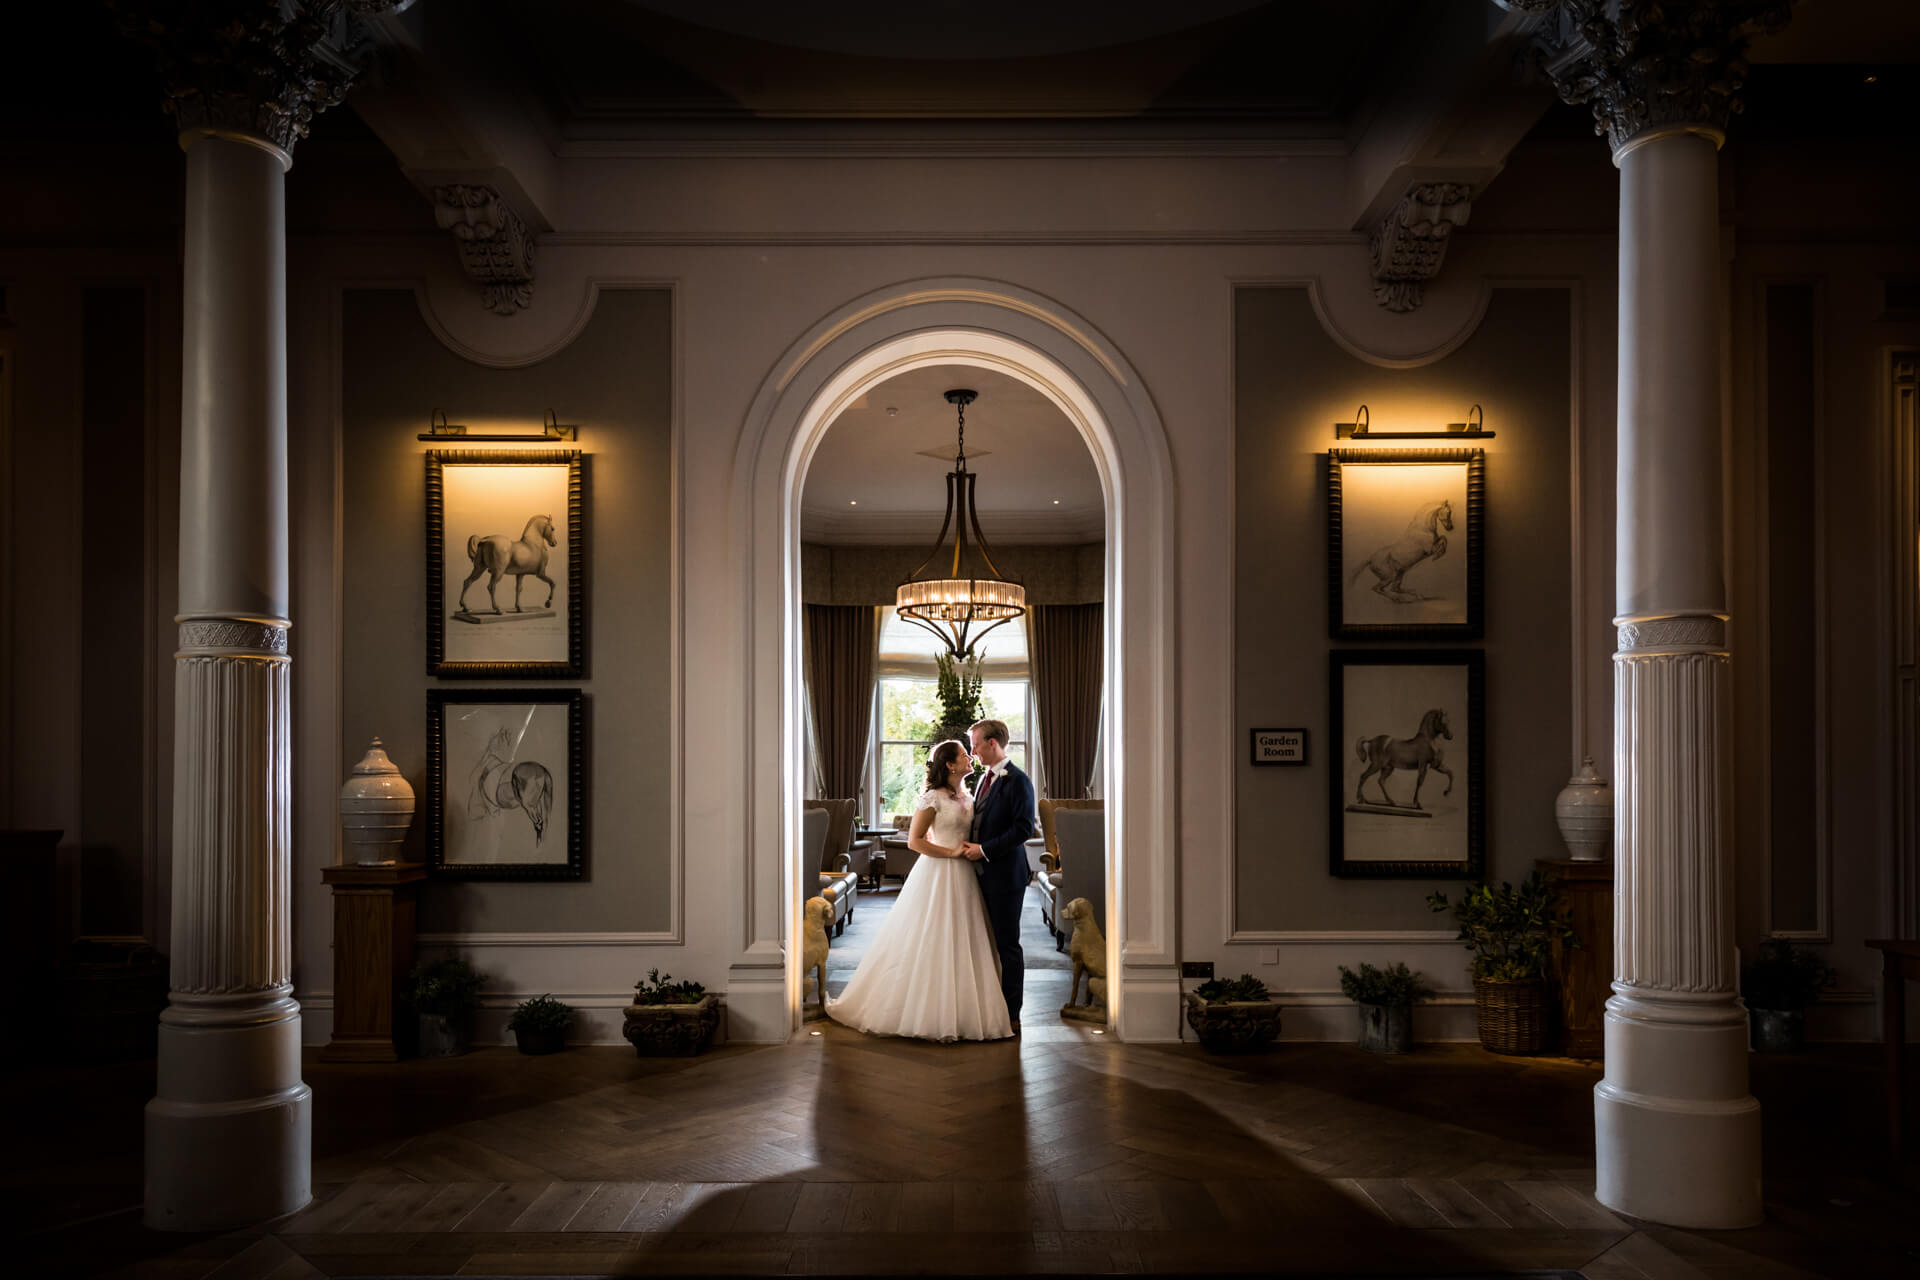 wedding couple standing in a doorway in a hotel